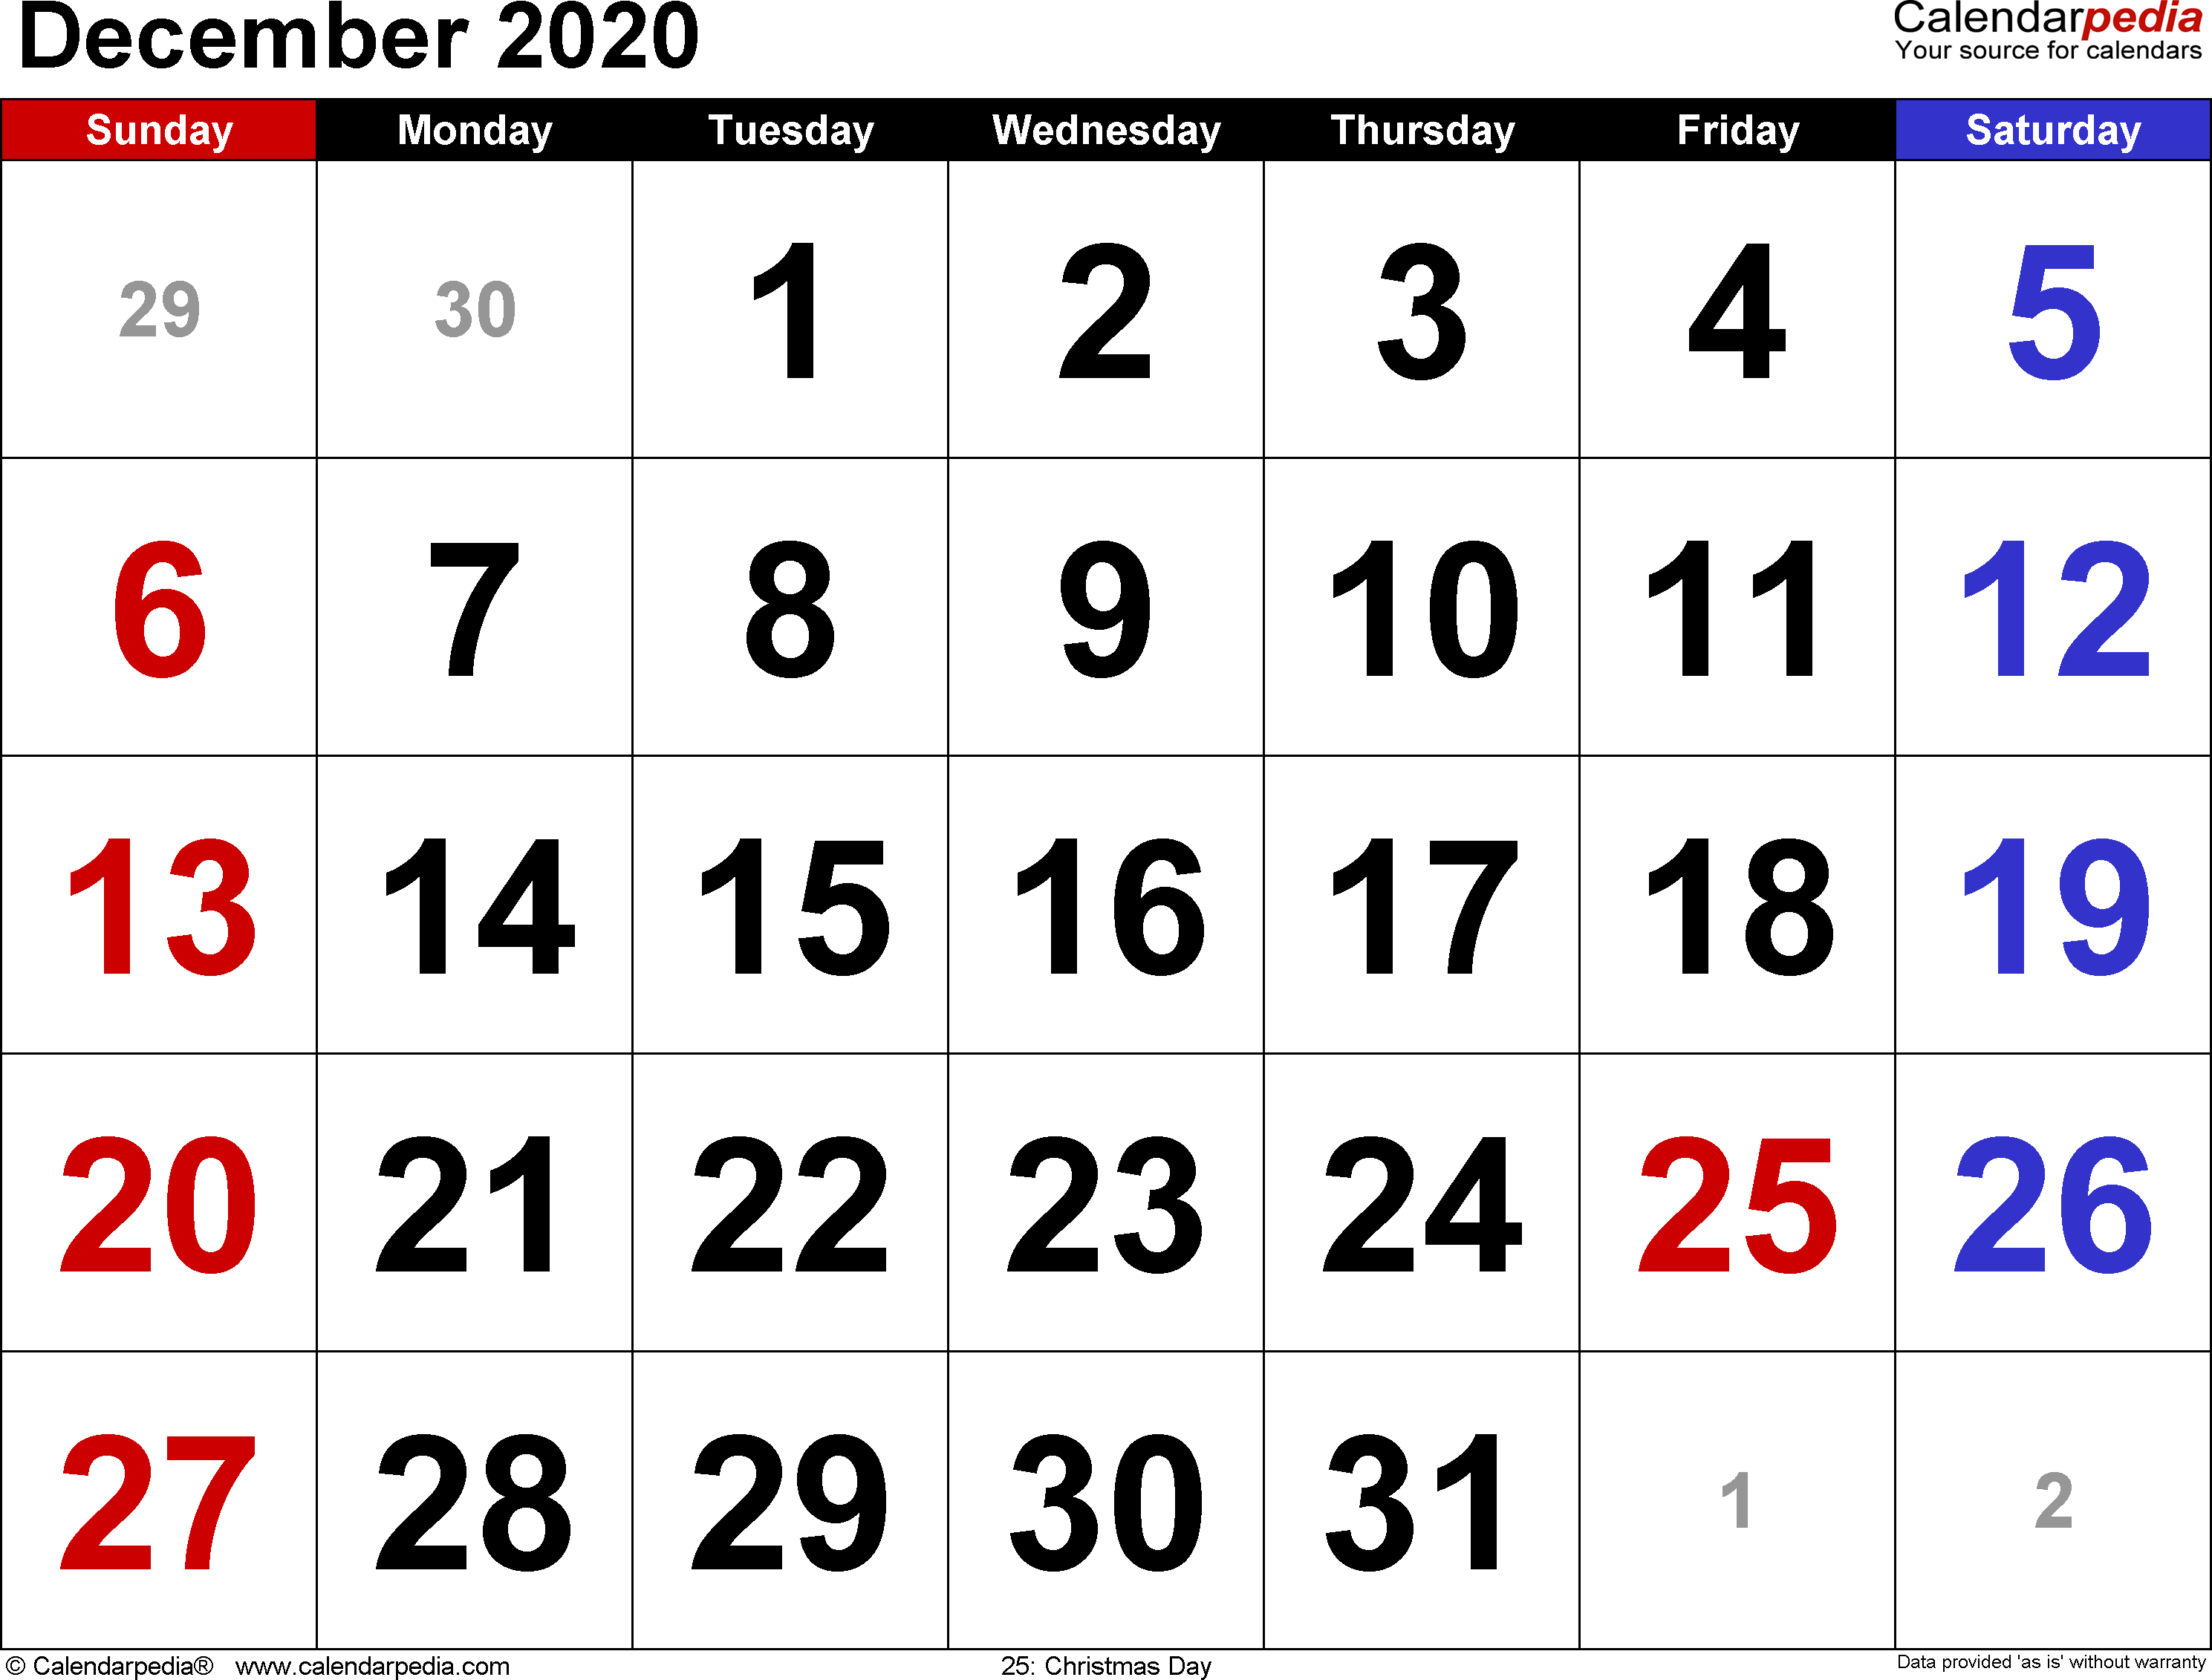 December 2020 Calendar Coloring Page December 2020 Calendars for Word, Excel & PDF